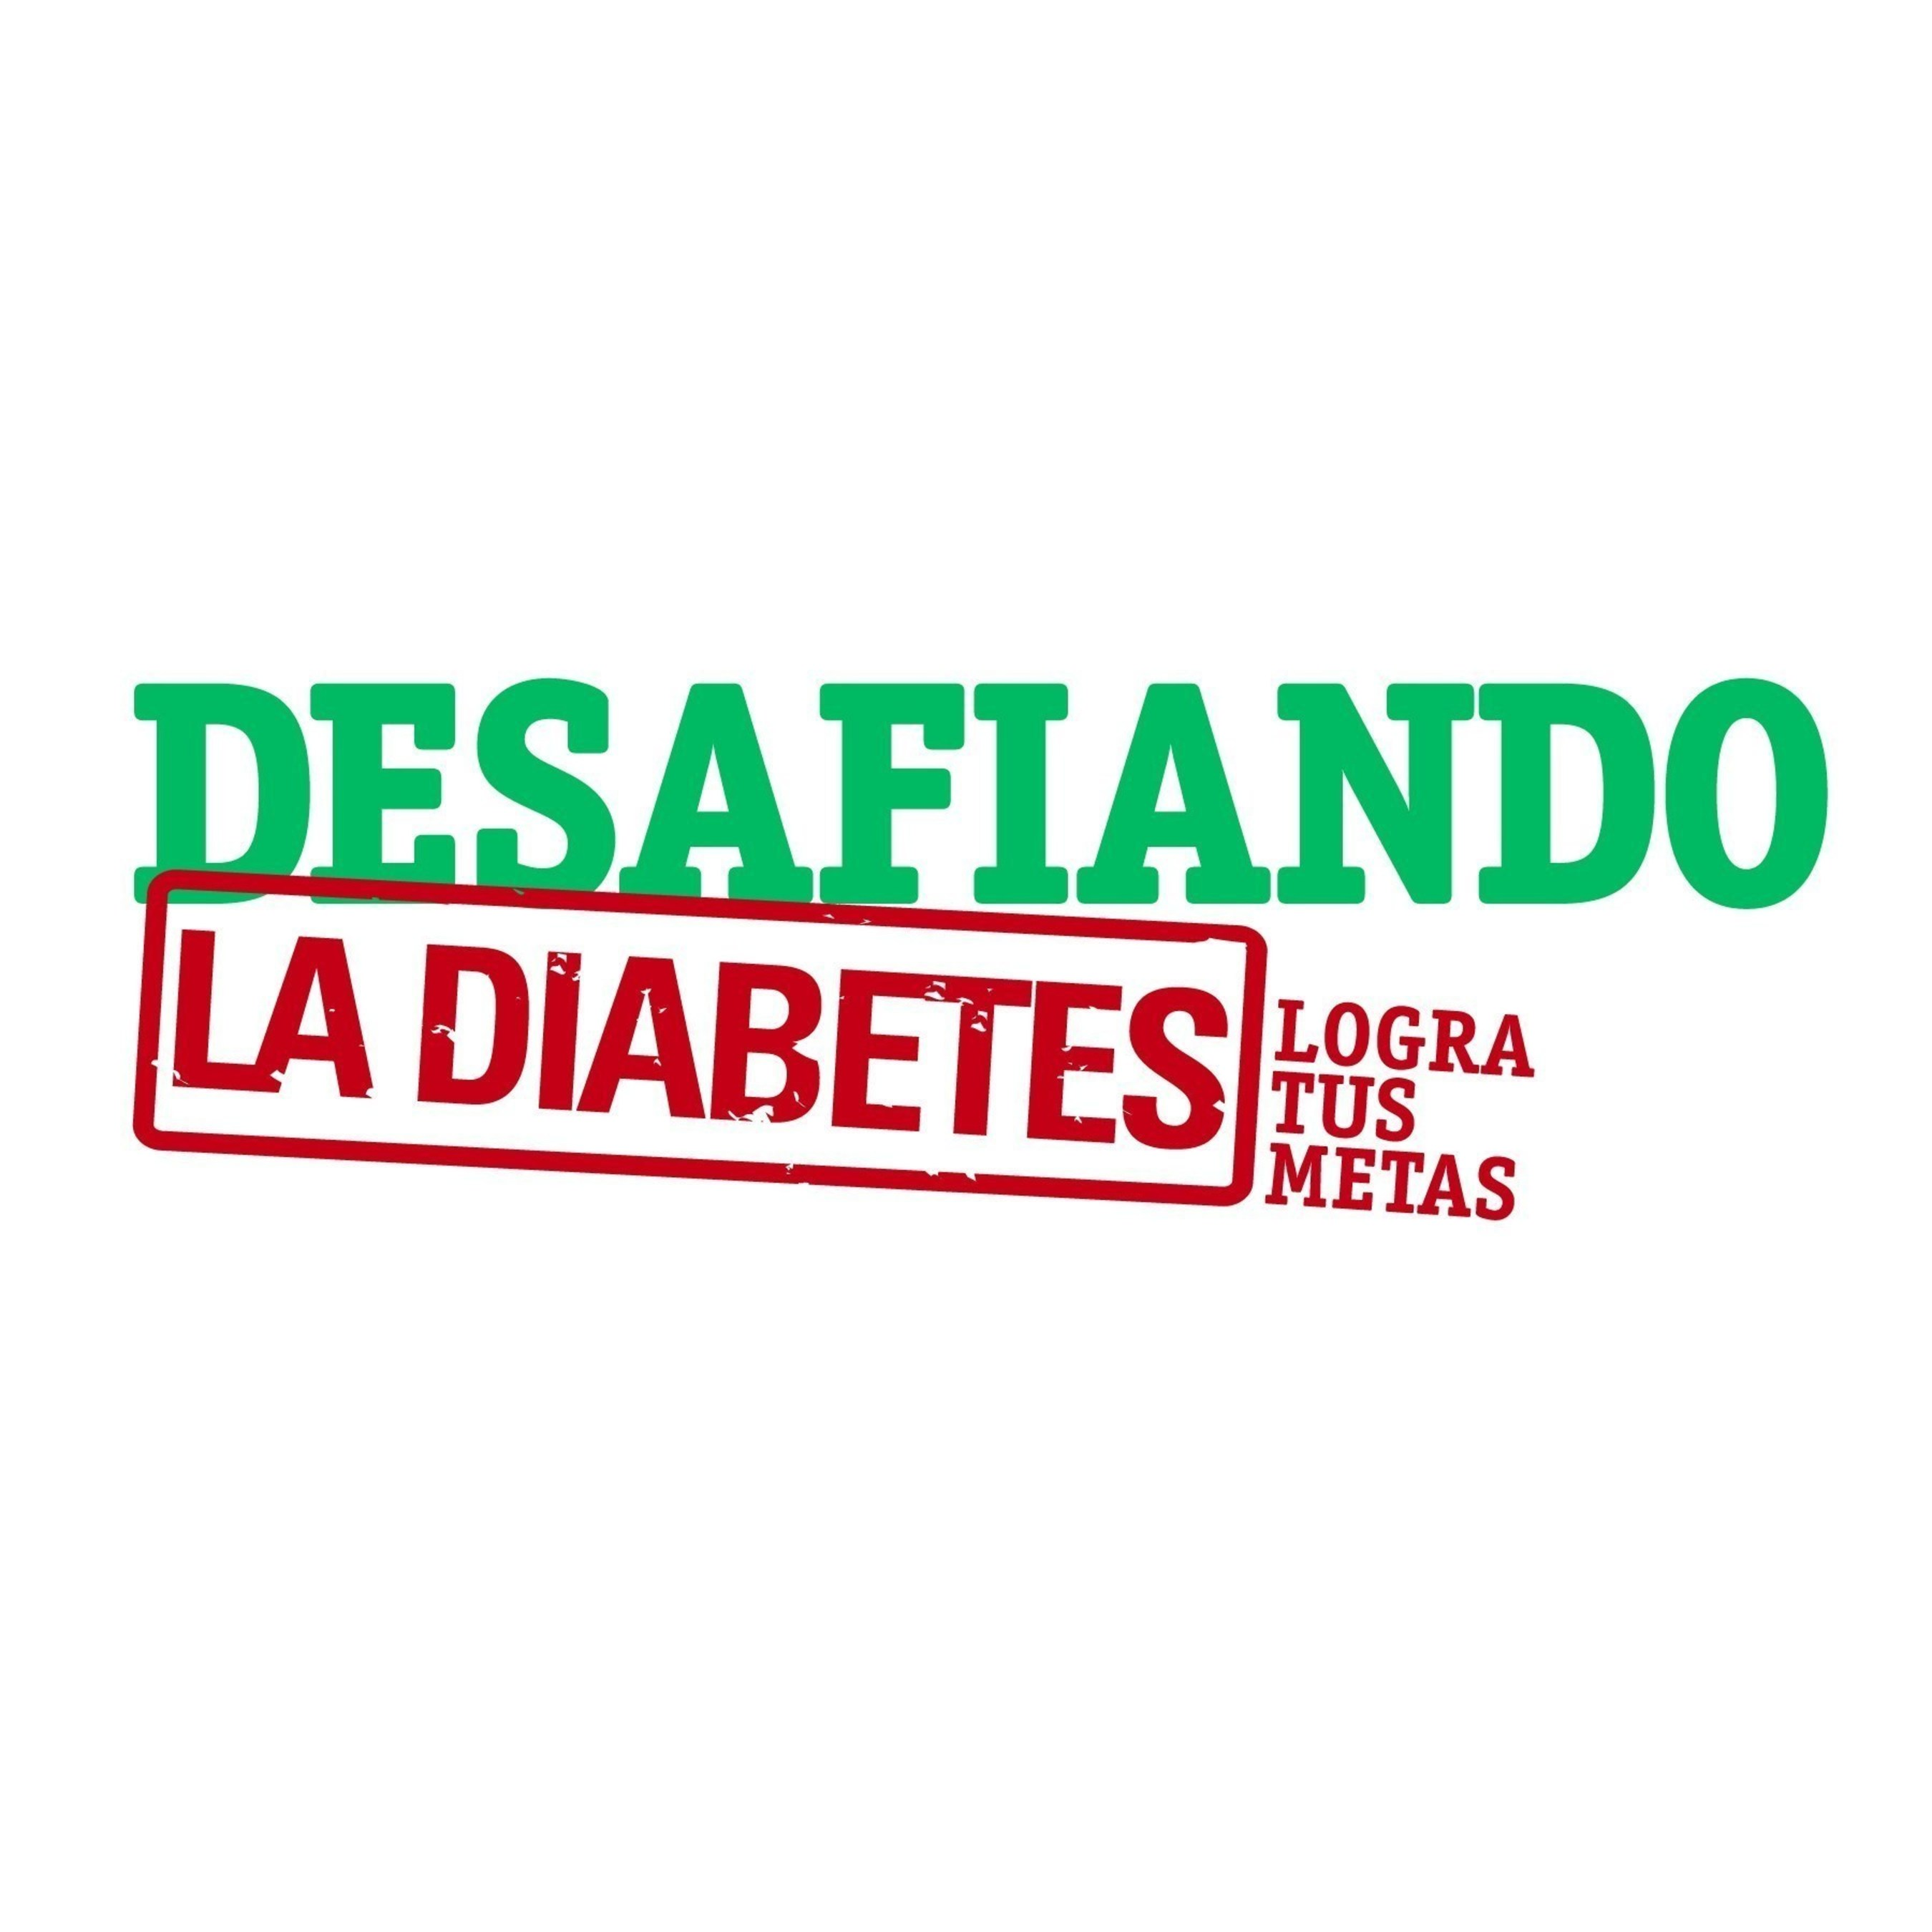 Desafiando La Diabetes: Logra Tus Metas